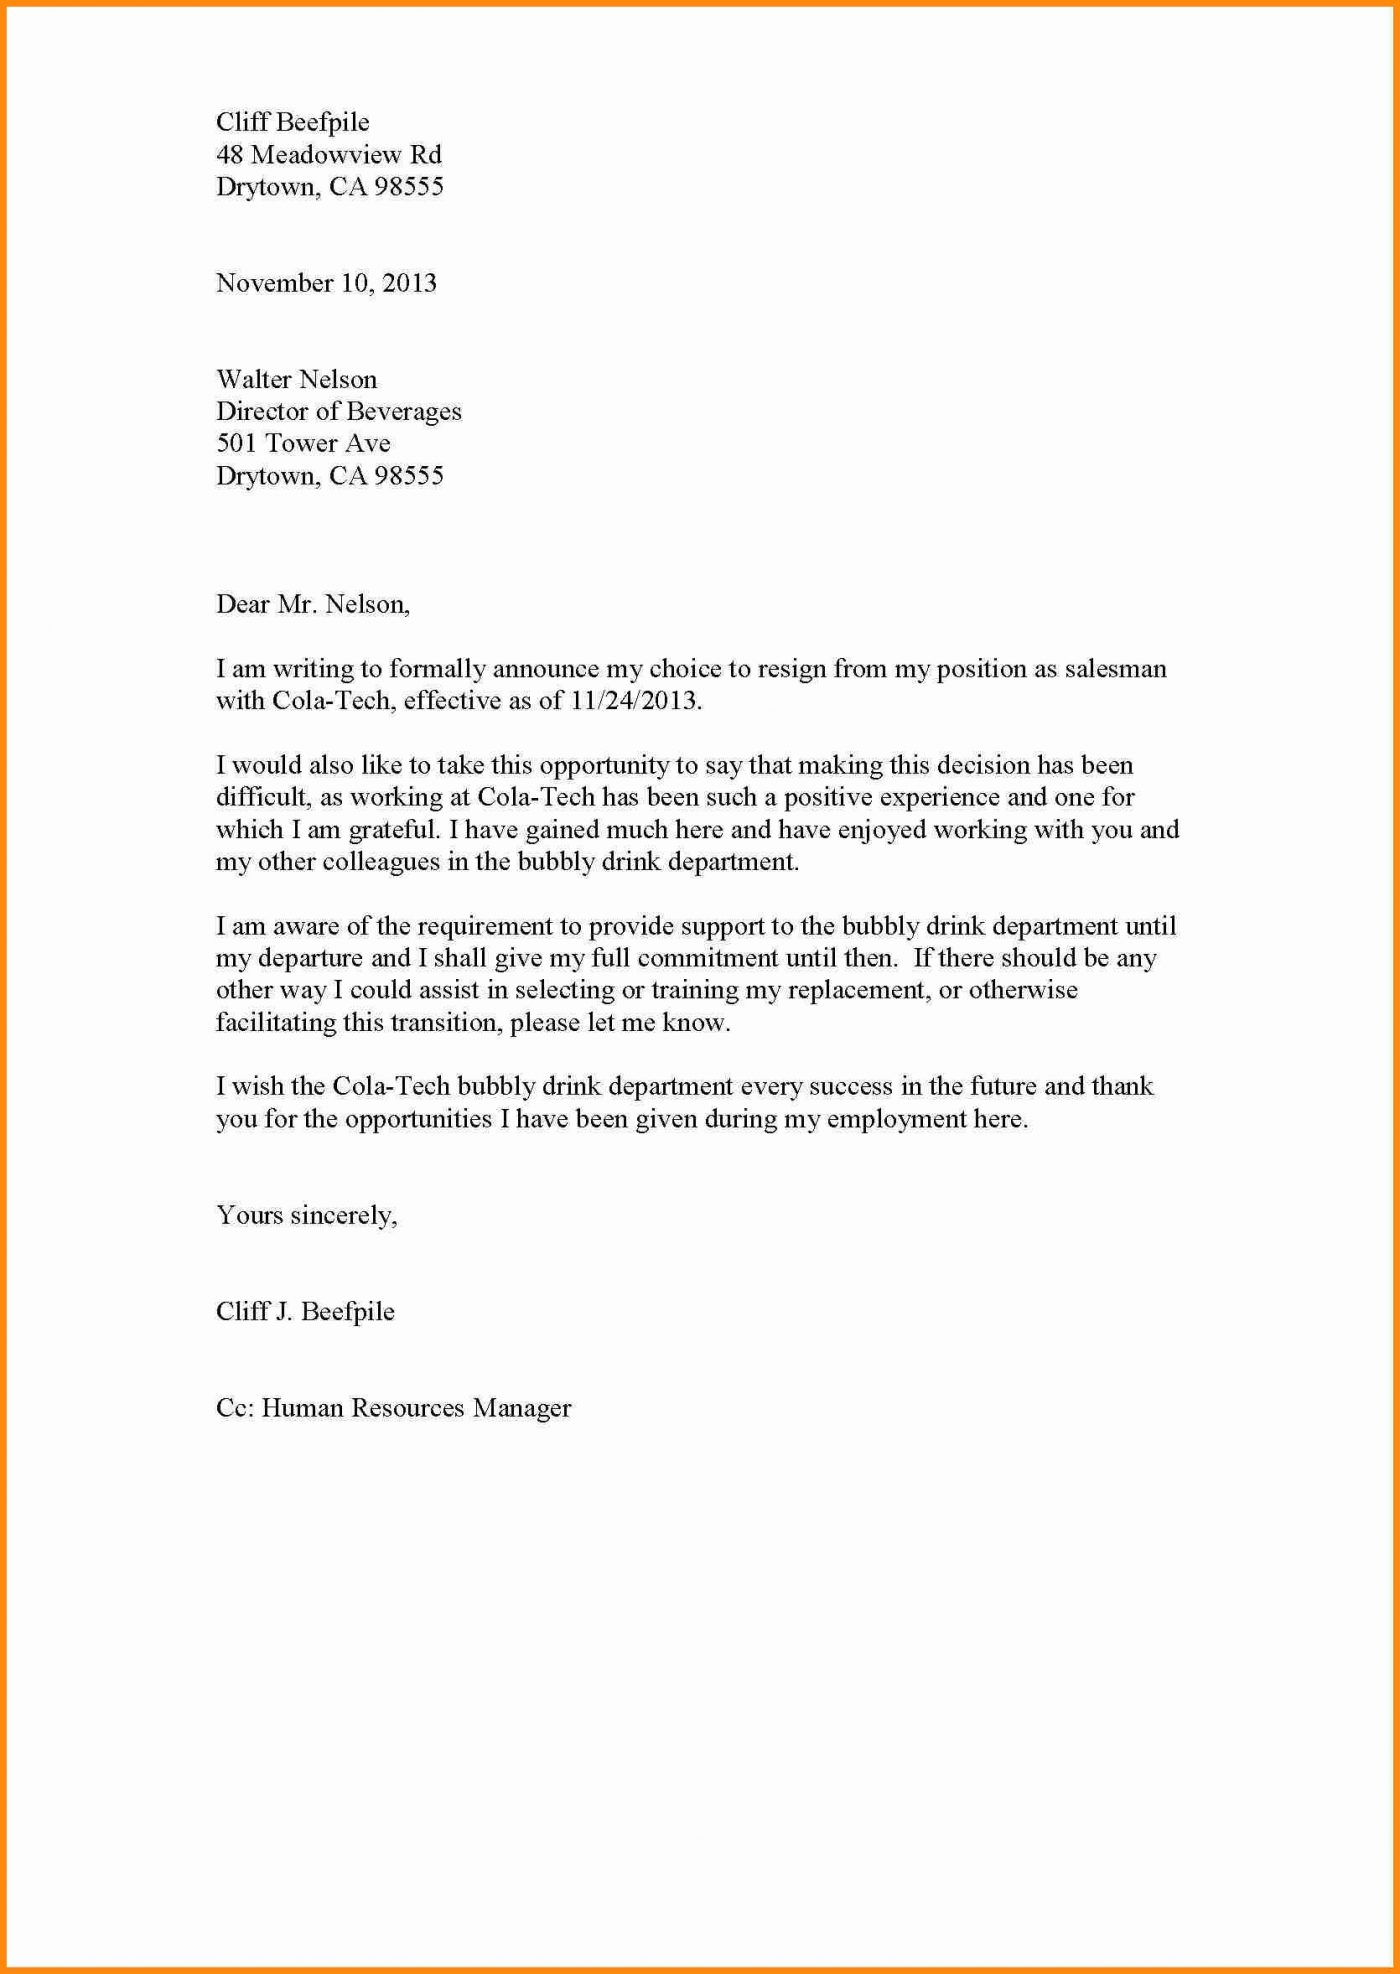 10 Day Demand Letter Template - 38 Application for Leave Personal Reason Well Application for Leave